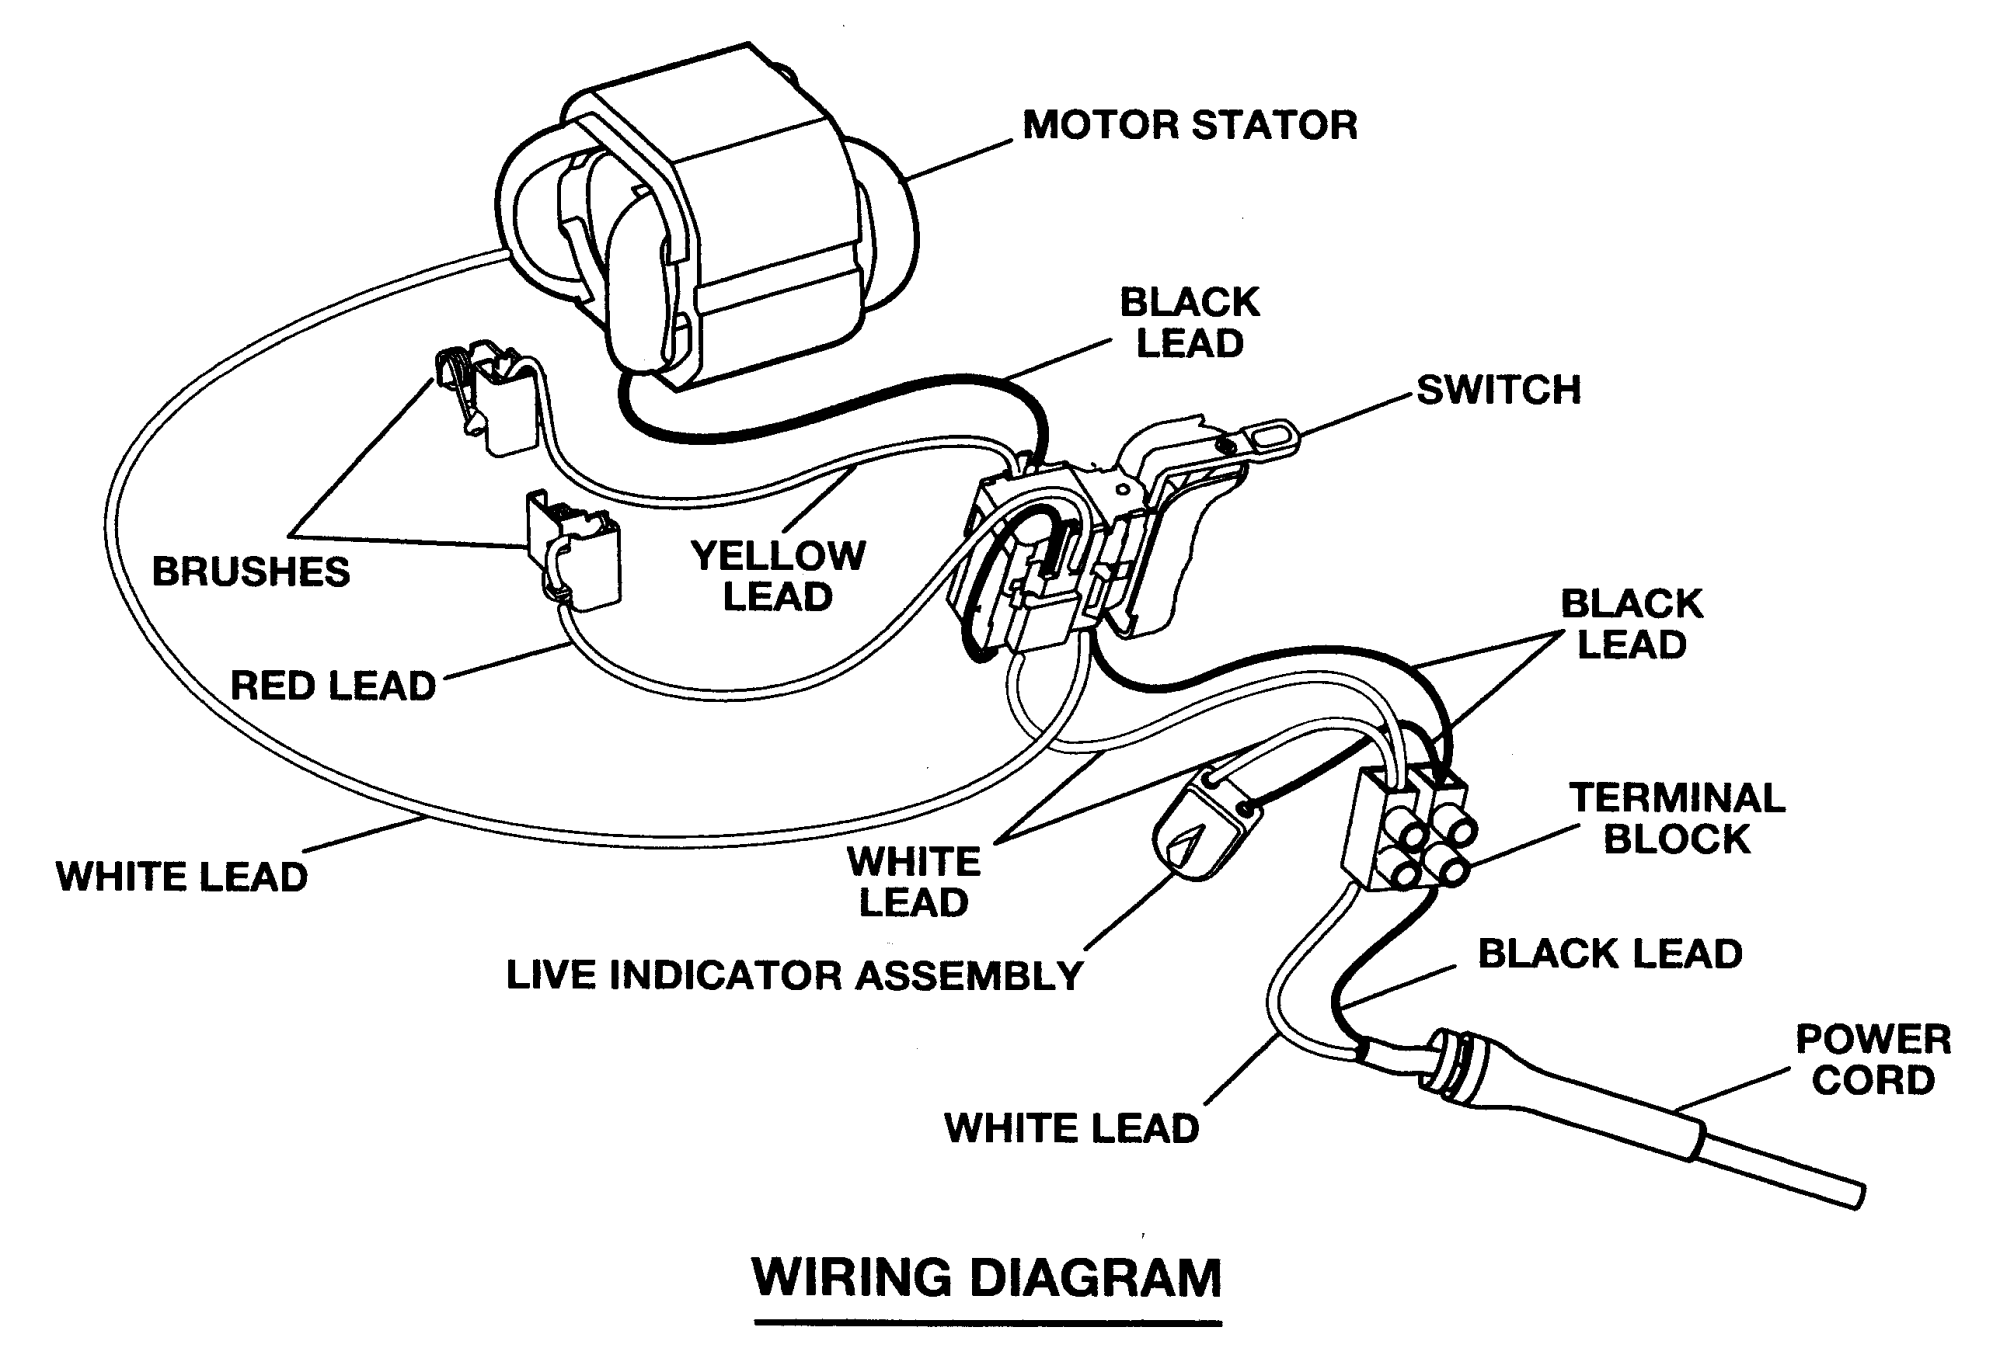 hight resolution of power tool wiring diagram wiring diagram data todaypower tool schematics wiring diagram schematics power tool wiring